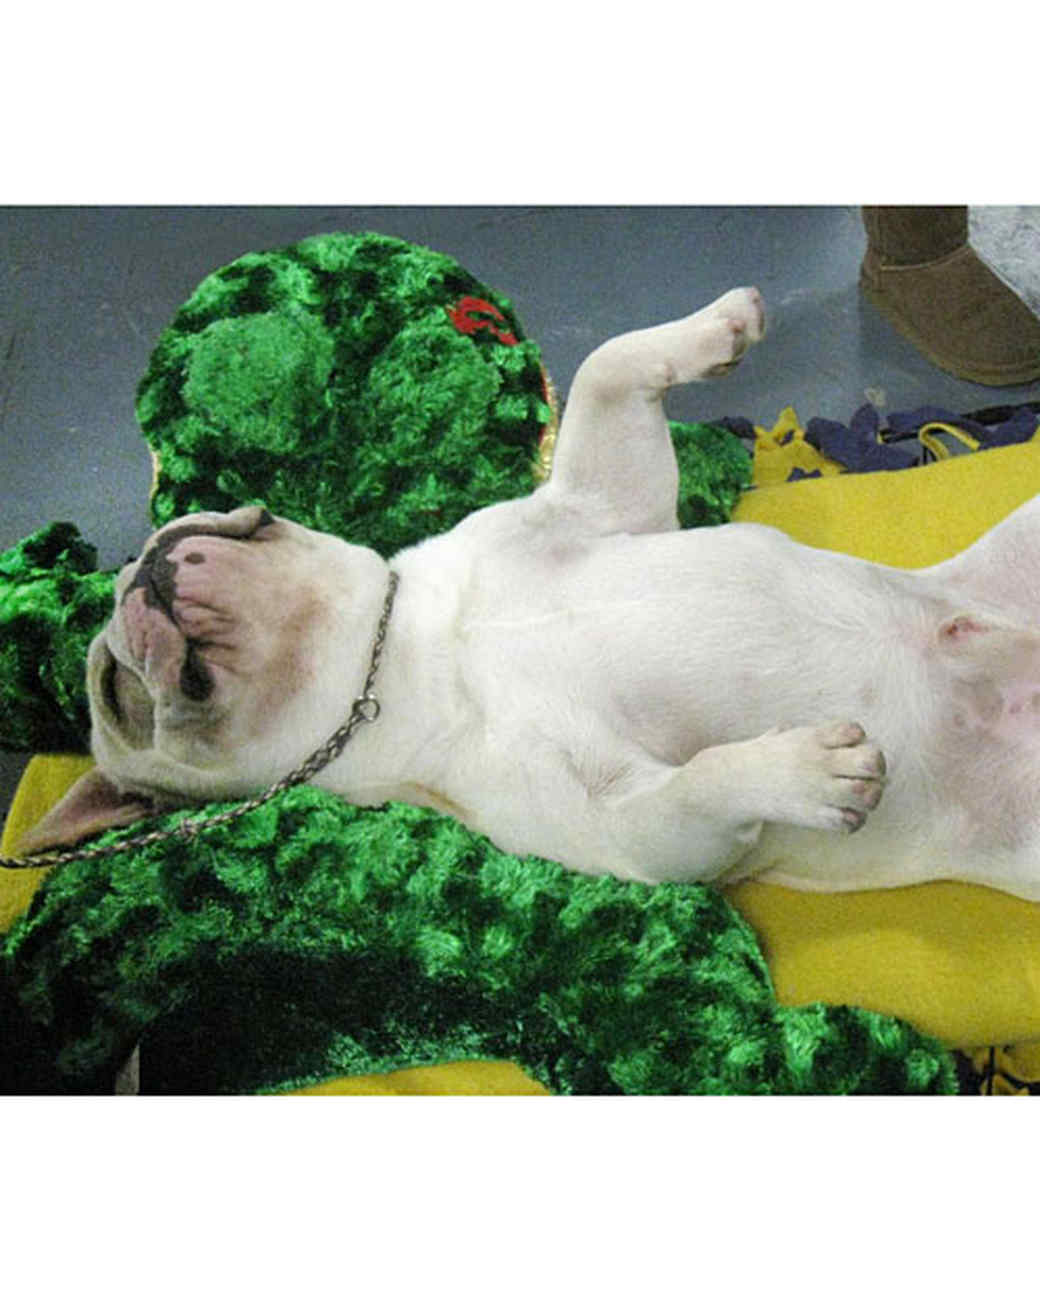 6104_021611_french_bulldog_exhausted.jpg